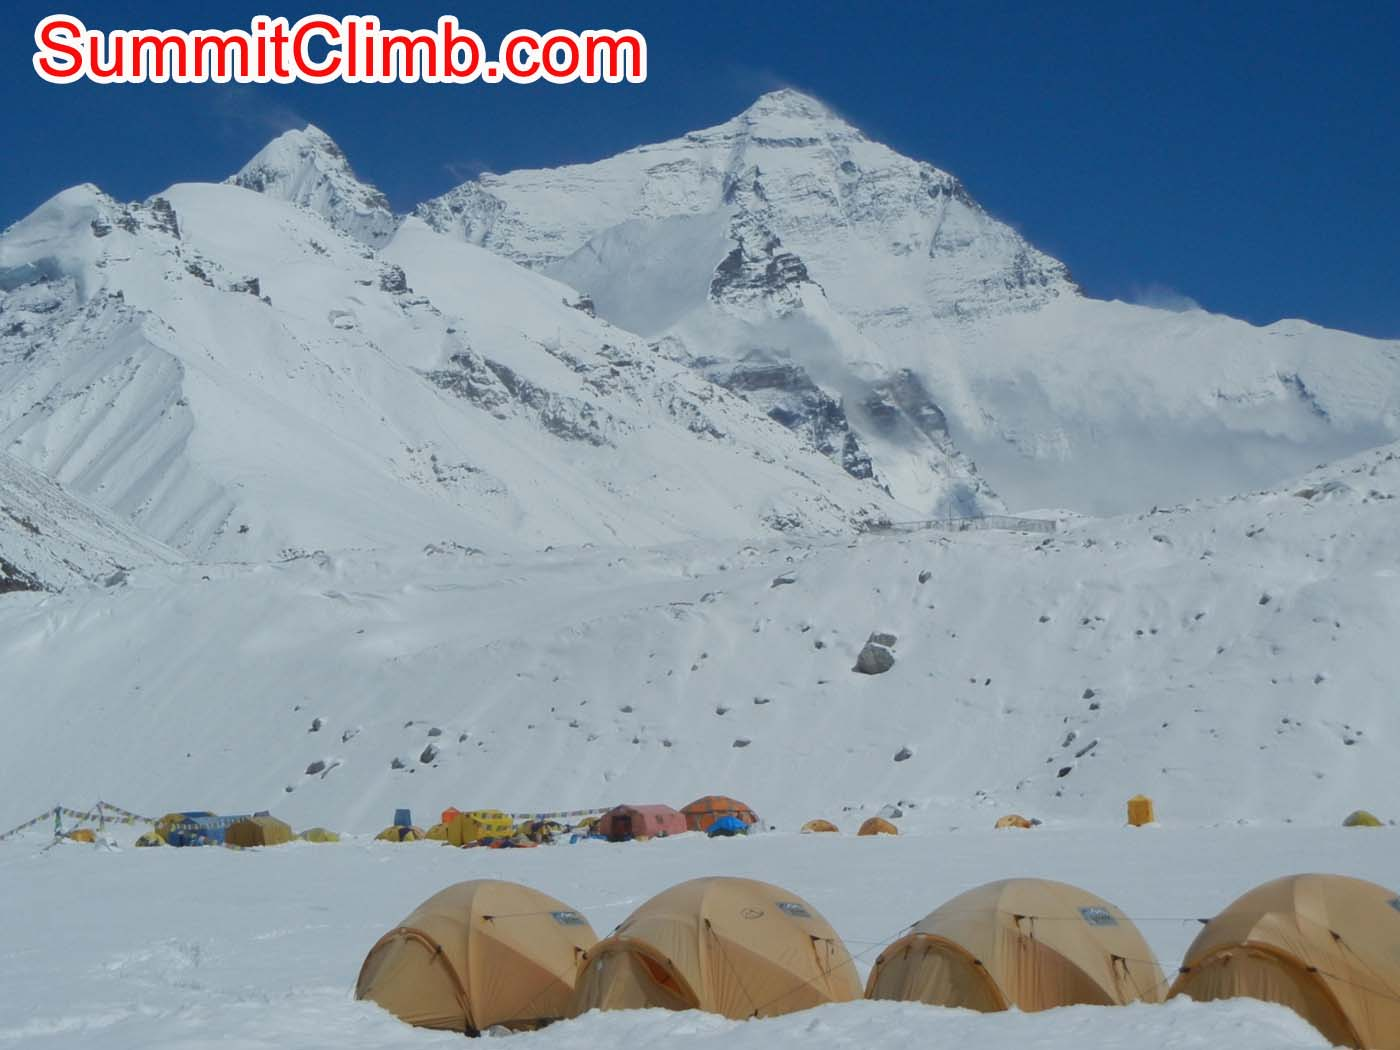 Everest and Basecamp after storm dropped over 1 meter of snow at Basecamp - Photo Scott Patch